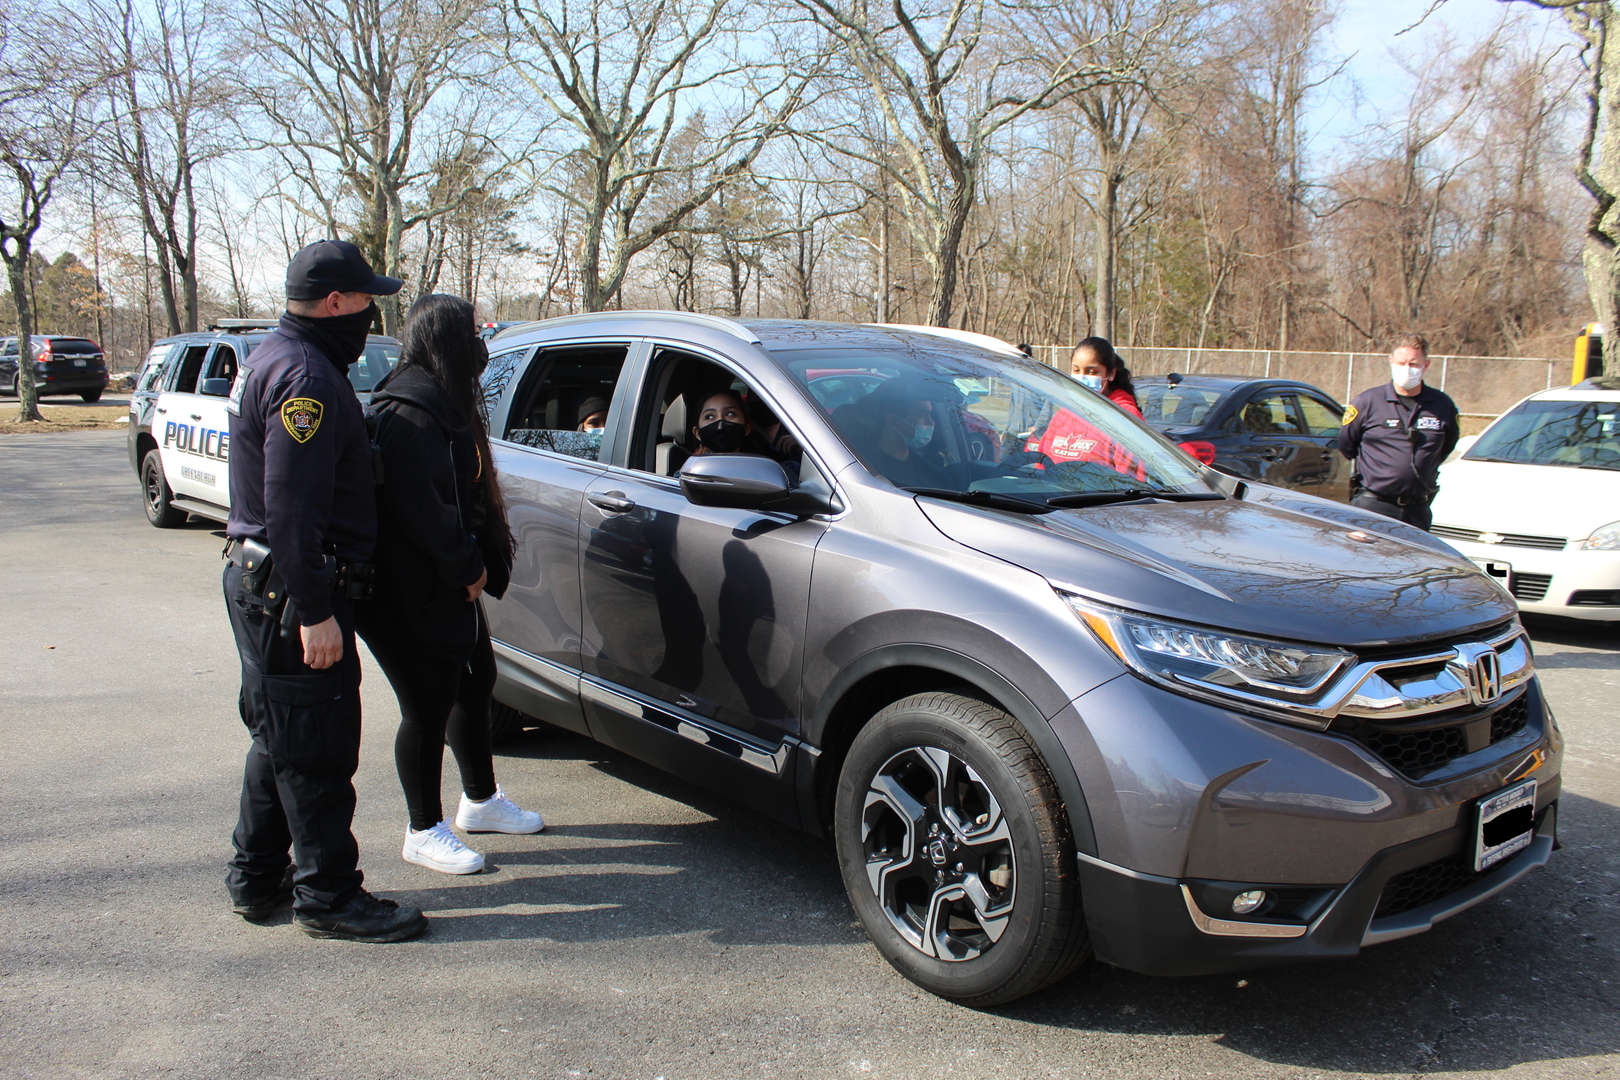 Students and cop stand outside vehicle in a simulated traffic stop